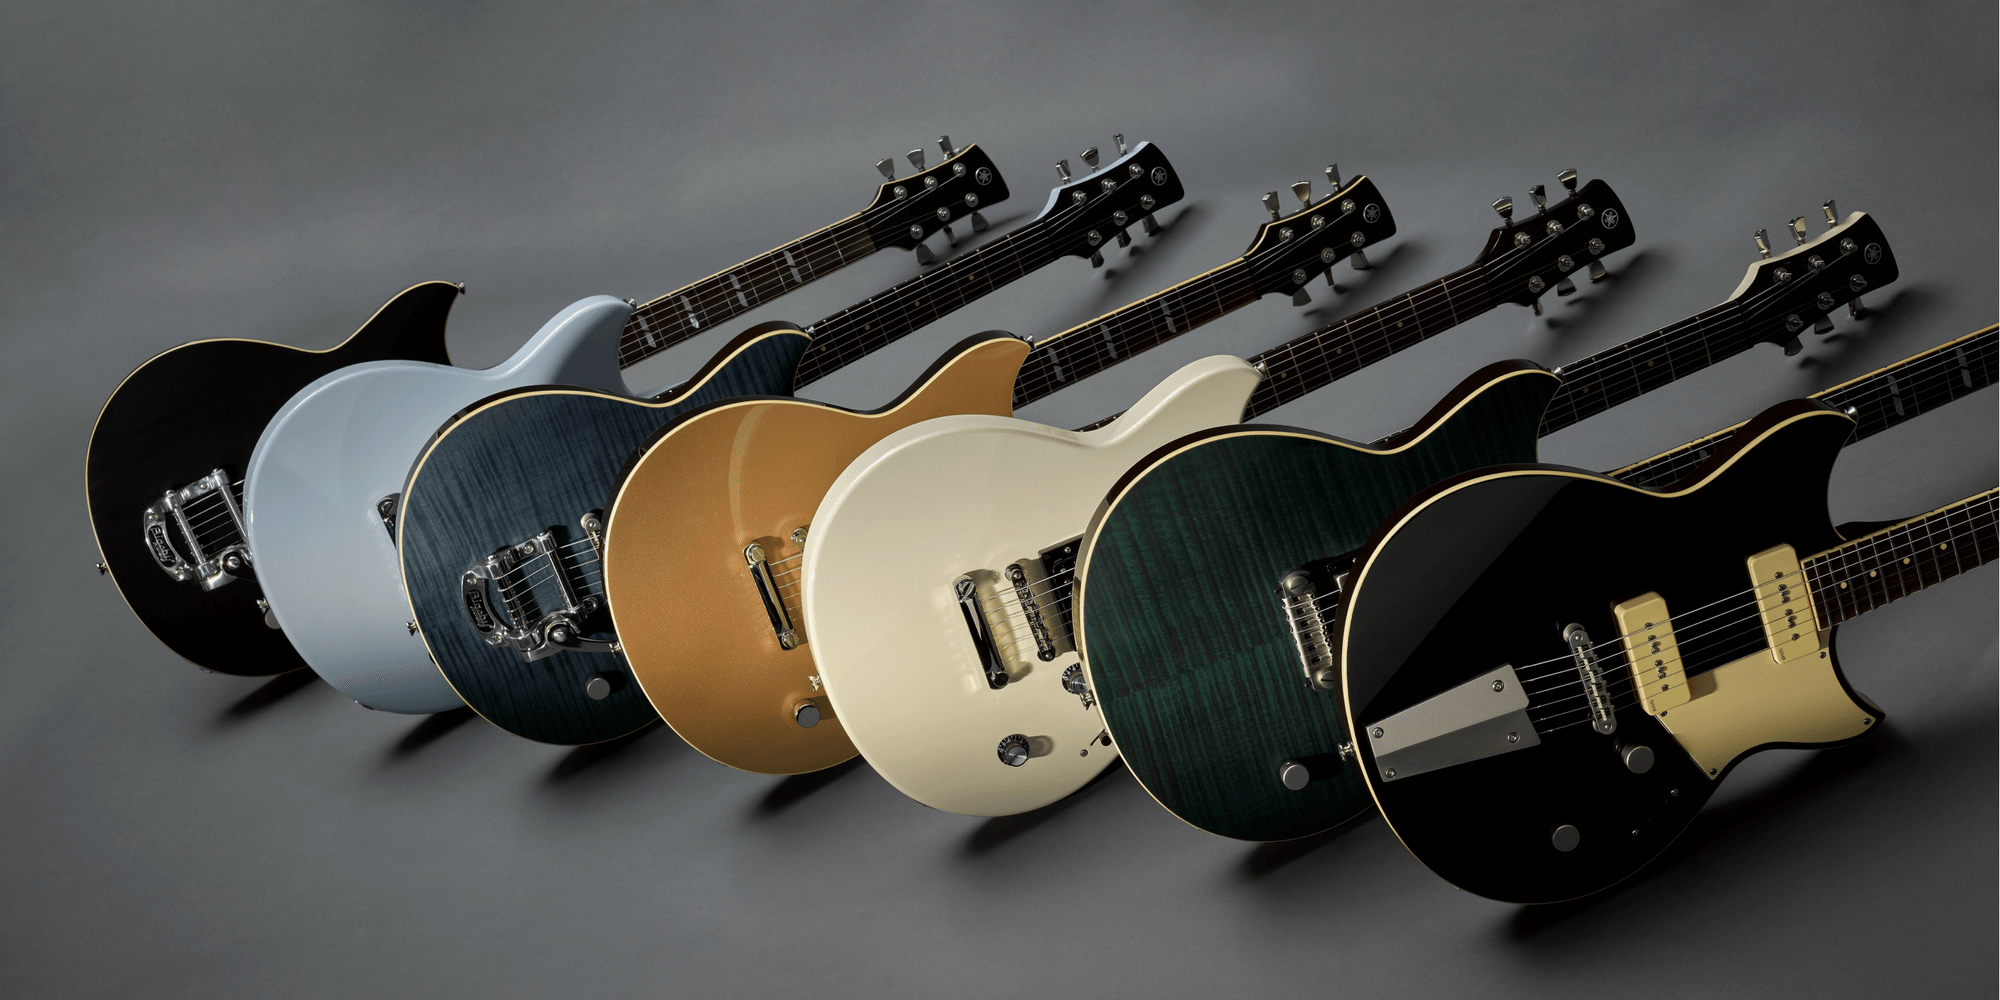 namm 2018 yamaha adds 6 new guitars to its revstar range the guitar magazine. Black Bedroom Furniture Sets. Home Design Ideas